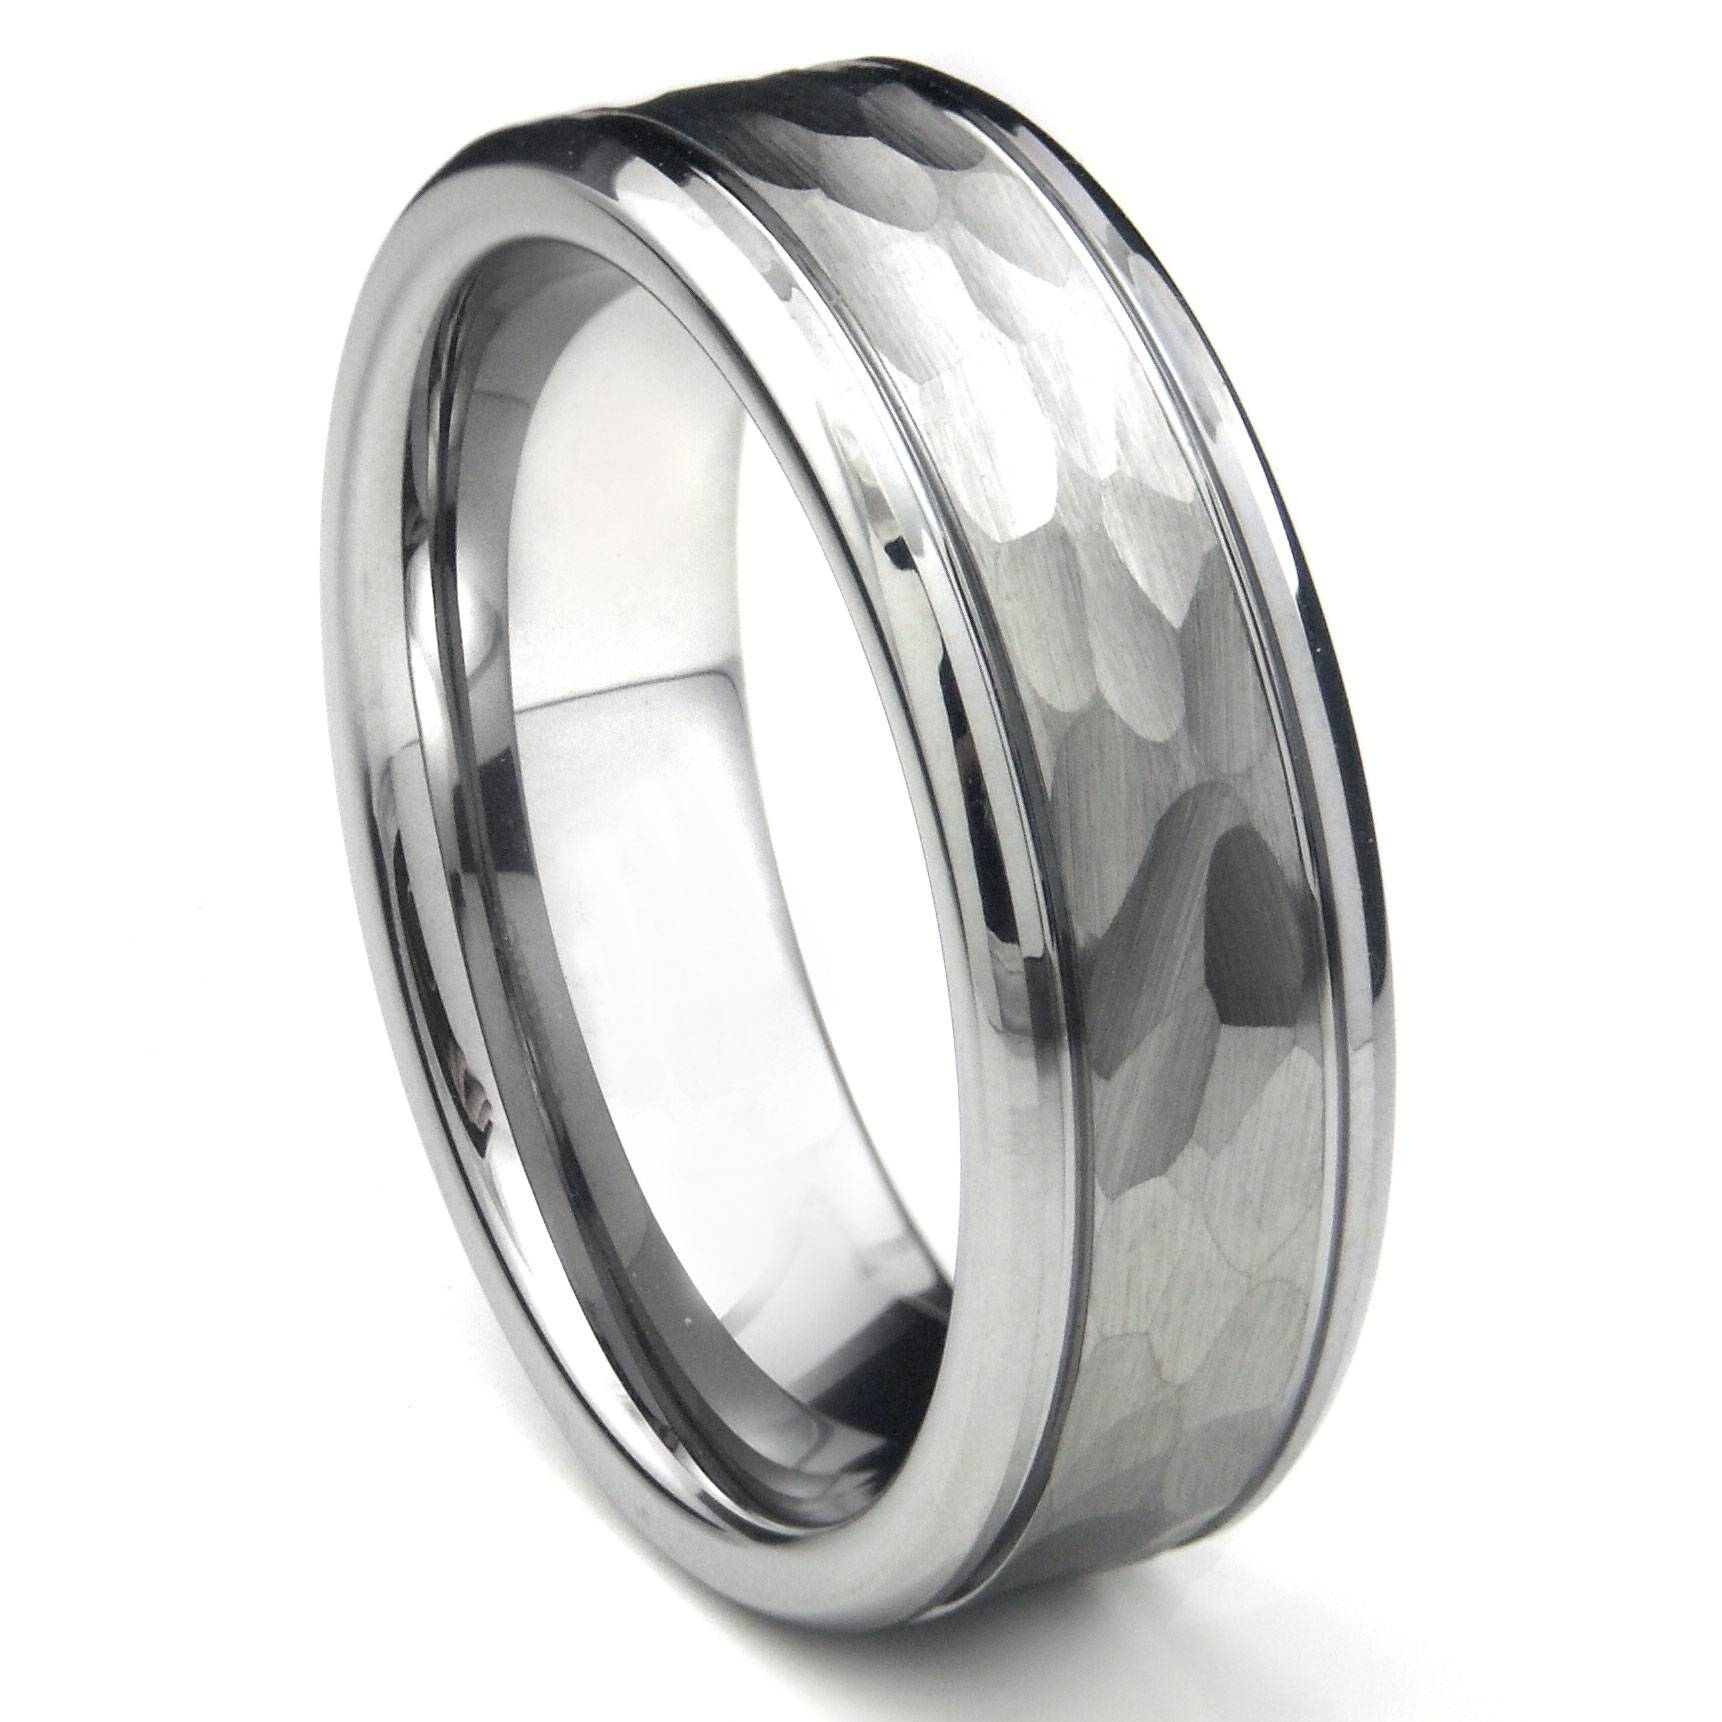 Tungsten Carbide Hammer Finish Wedding Band Ring /w Grooves Intended For Tungsten Titanium Wedding Bands (View 13 of 15)